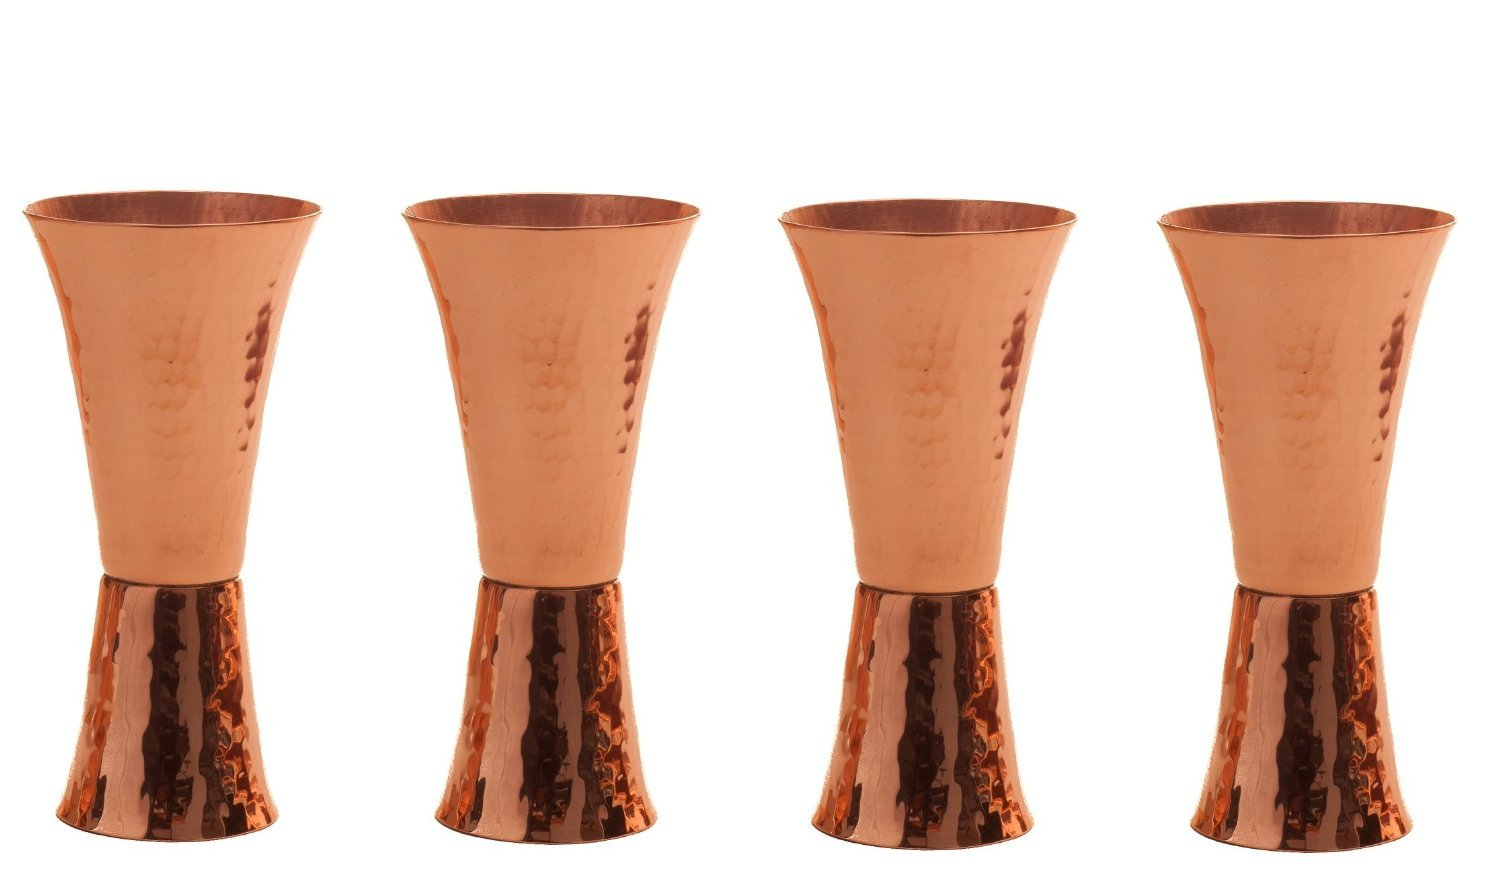 Sertodo Copper, Hand Hammered 100% Pure Copper, Double Sided Jigger, 1 oz. and 2 oz. measured shots, Set of 4